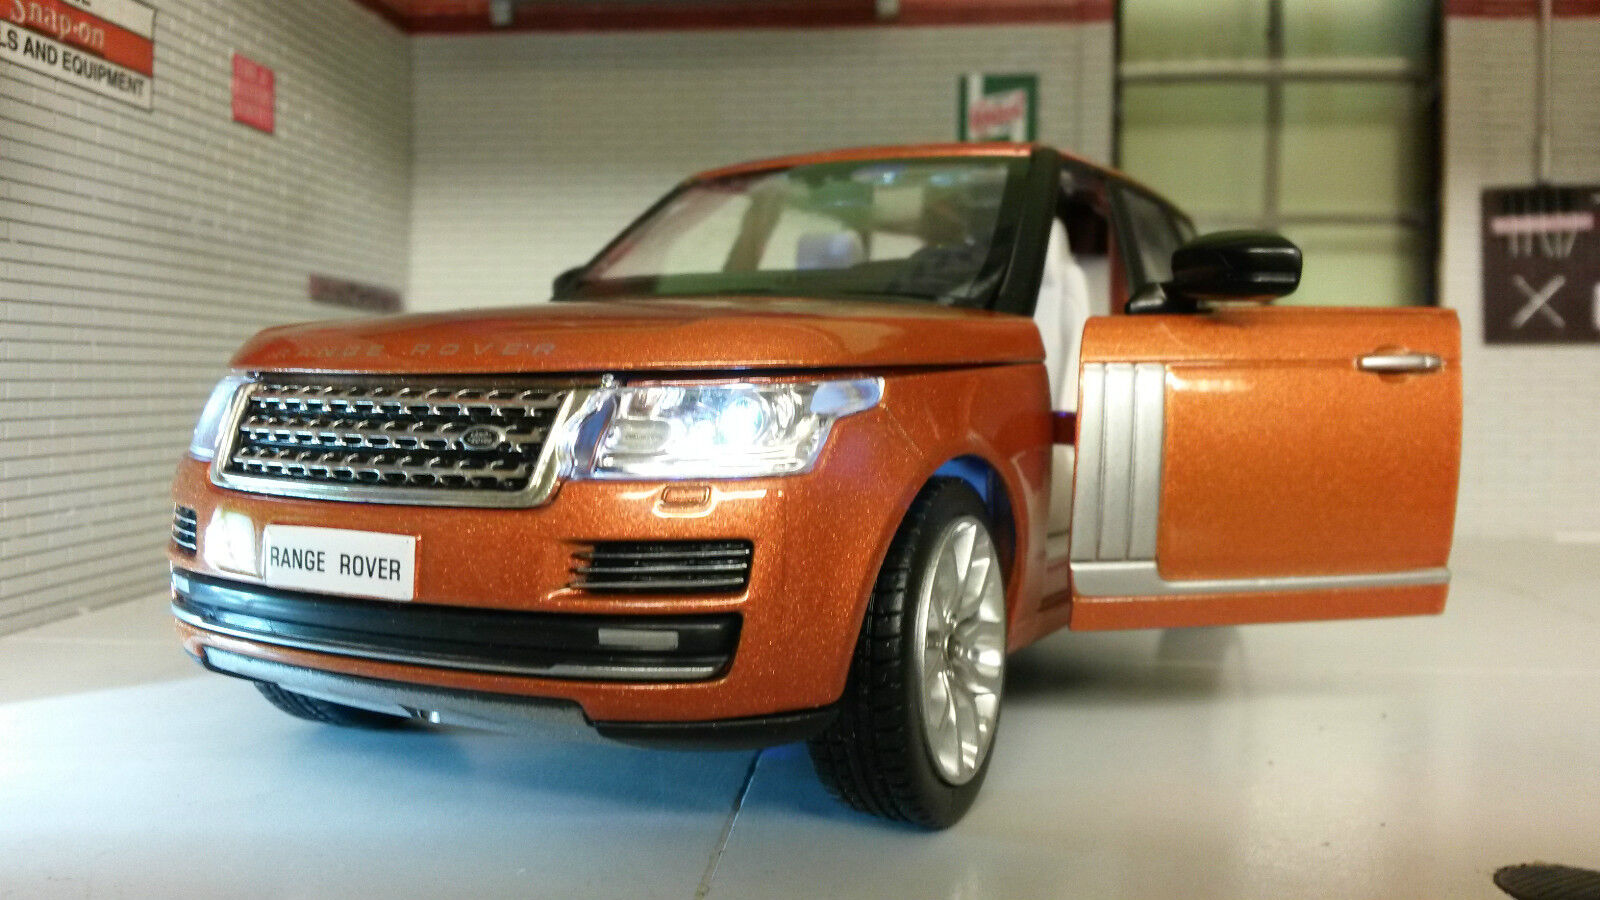 1 24 26 Range Rover L405 TD6 4.4 V8 HSE Phoenix orange MSZ Diecast Model Lights